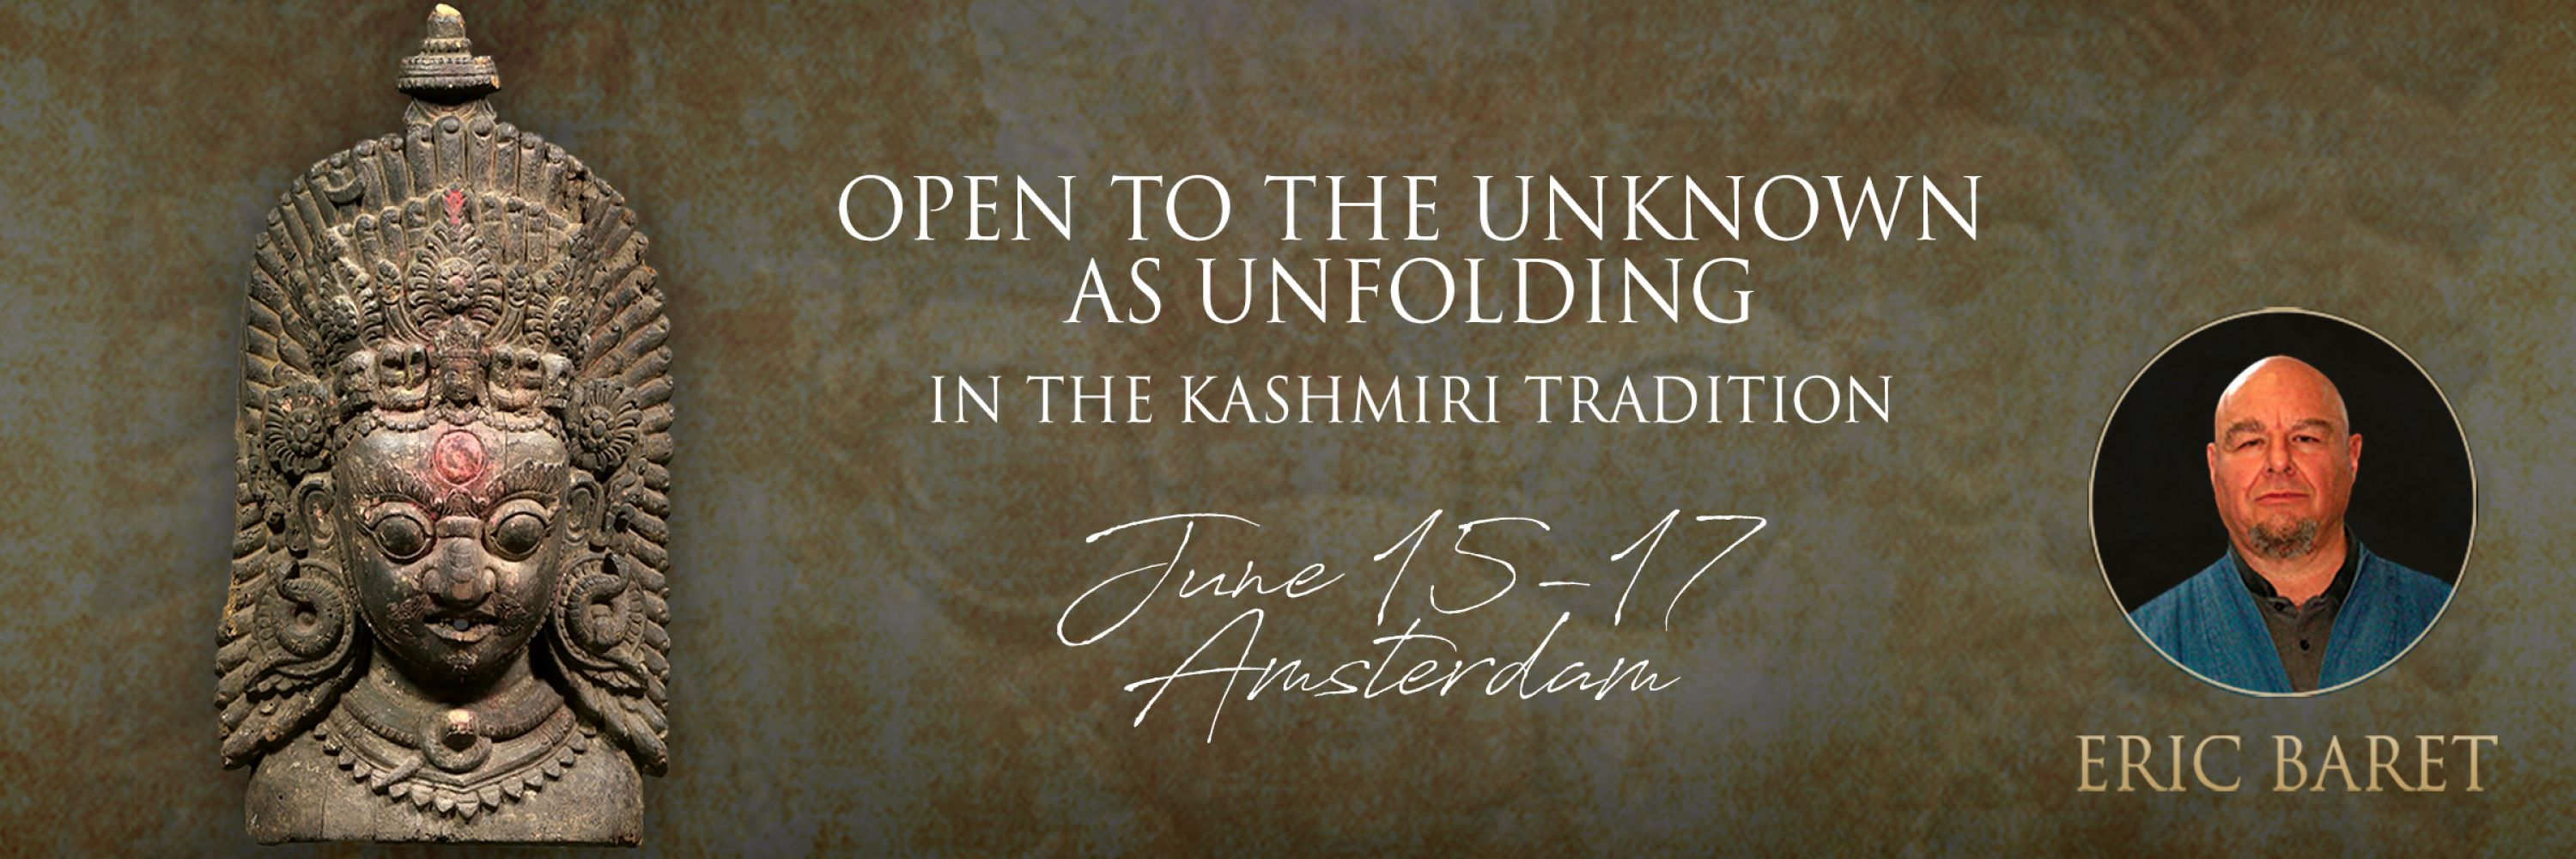 Opening to the Unknown in the Kashmiri Tradition, Eric Baret 2018